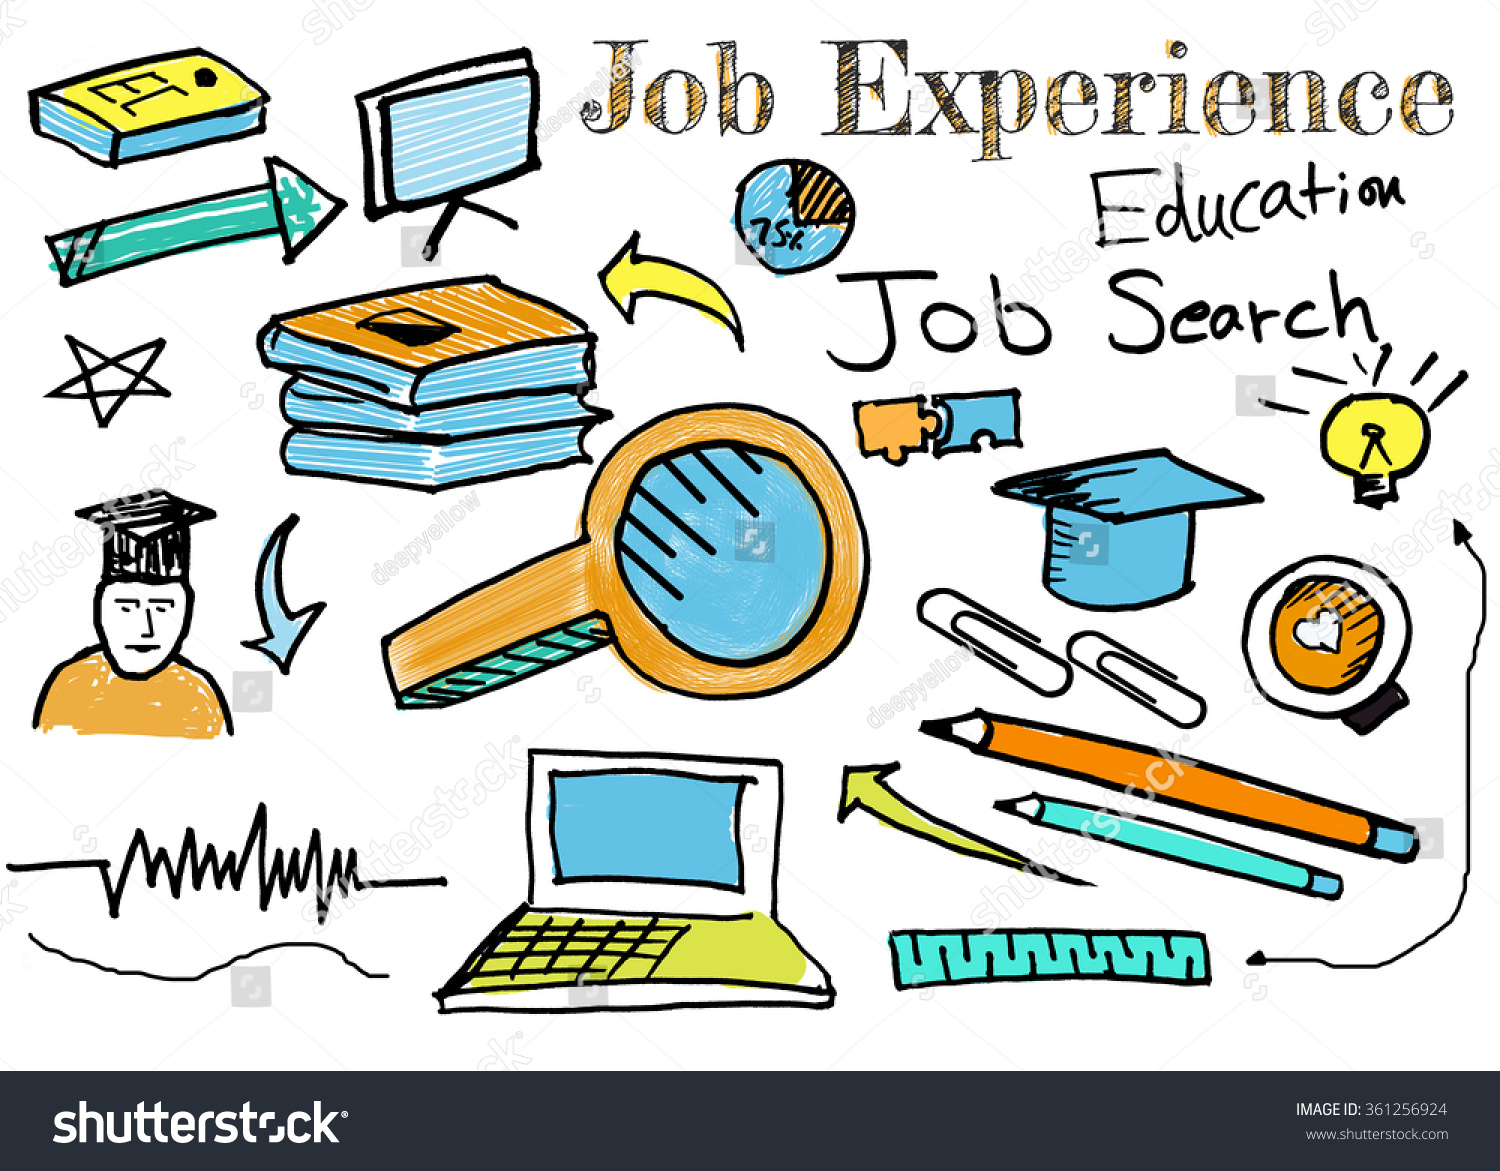 job search drawing icons books pencil stock illustration  job search drawing icons of books pencil ad degree